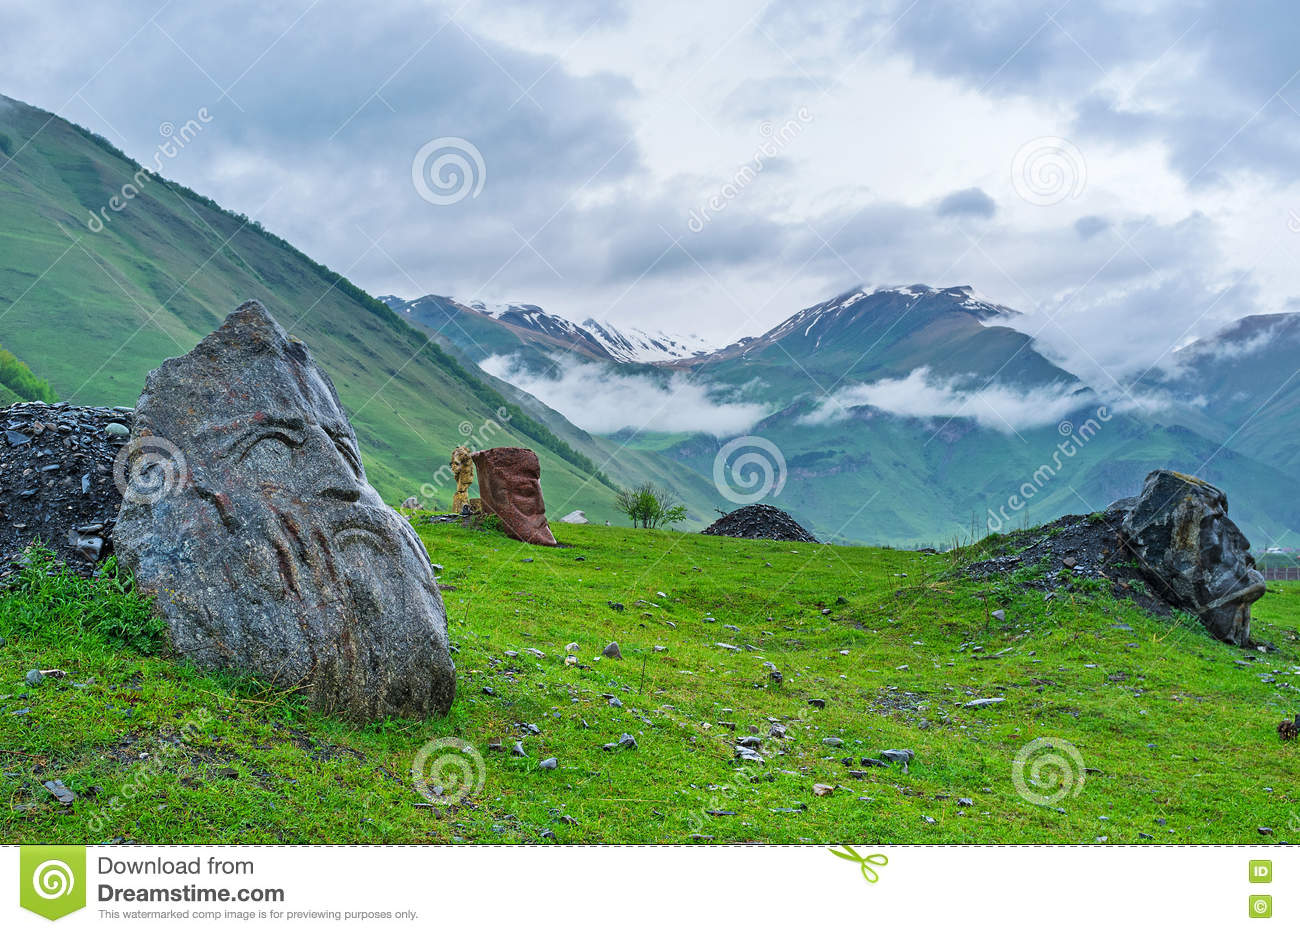 The Sno gorge in fog stock image  Image of monument, nature